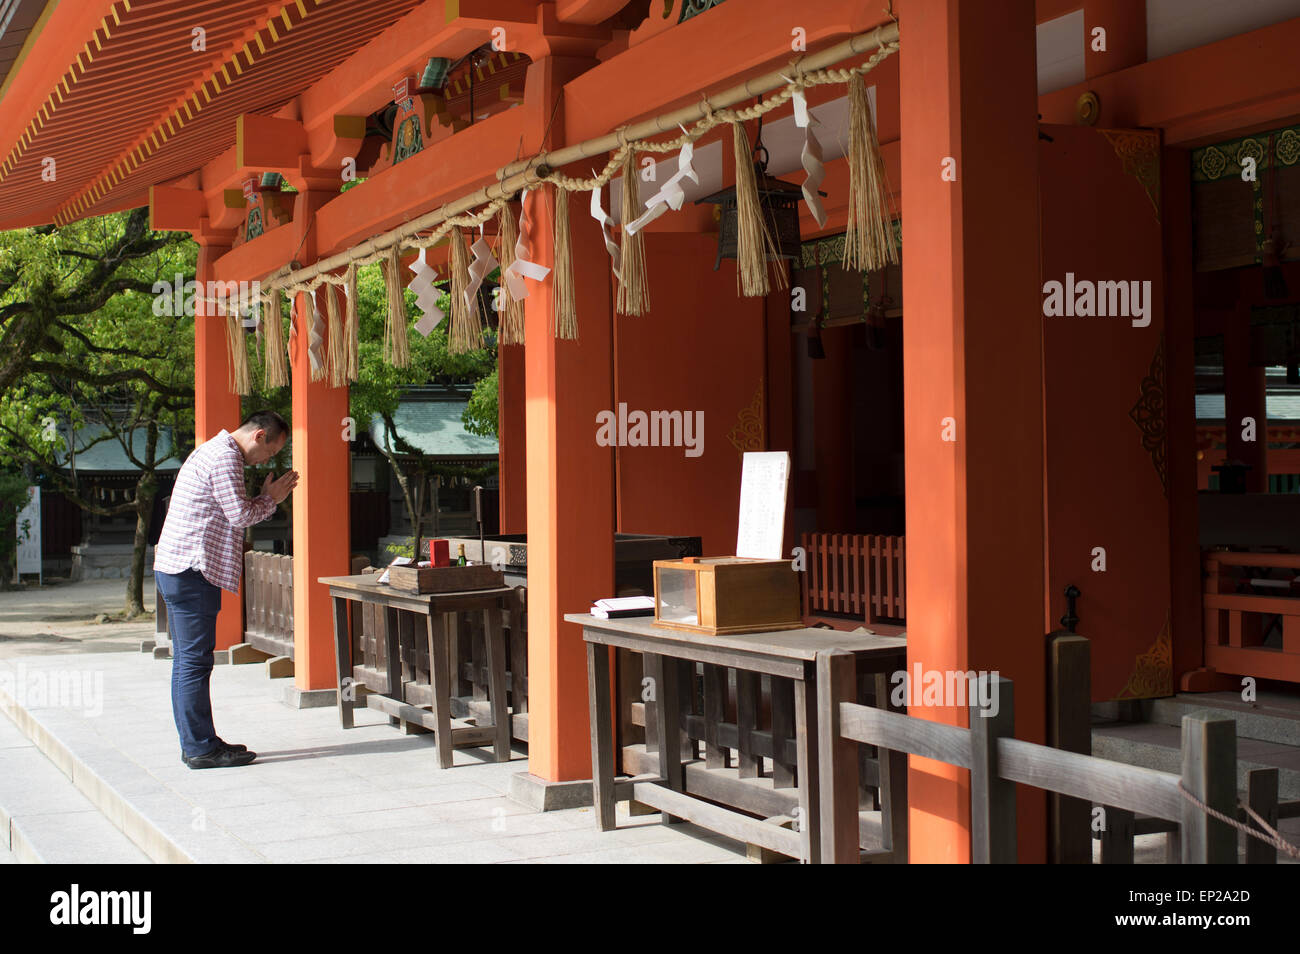 Praying at Sumiyoshi Shrine ( Shinto ) Fukuoka, Kyushu, Japan - Stock Image